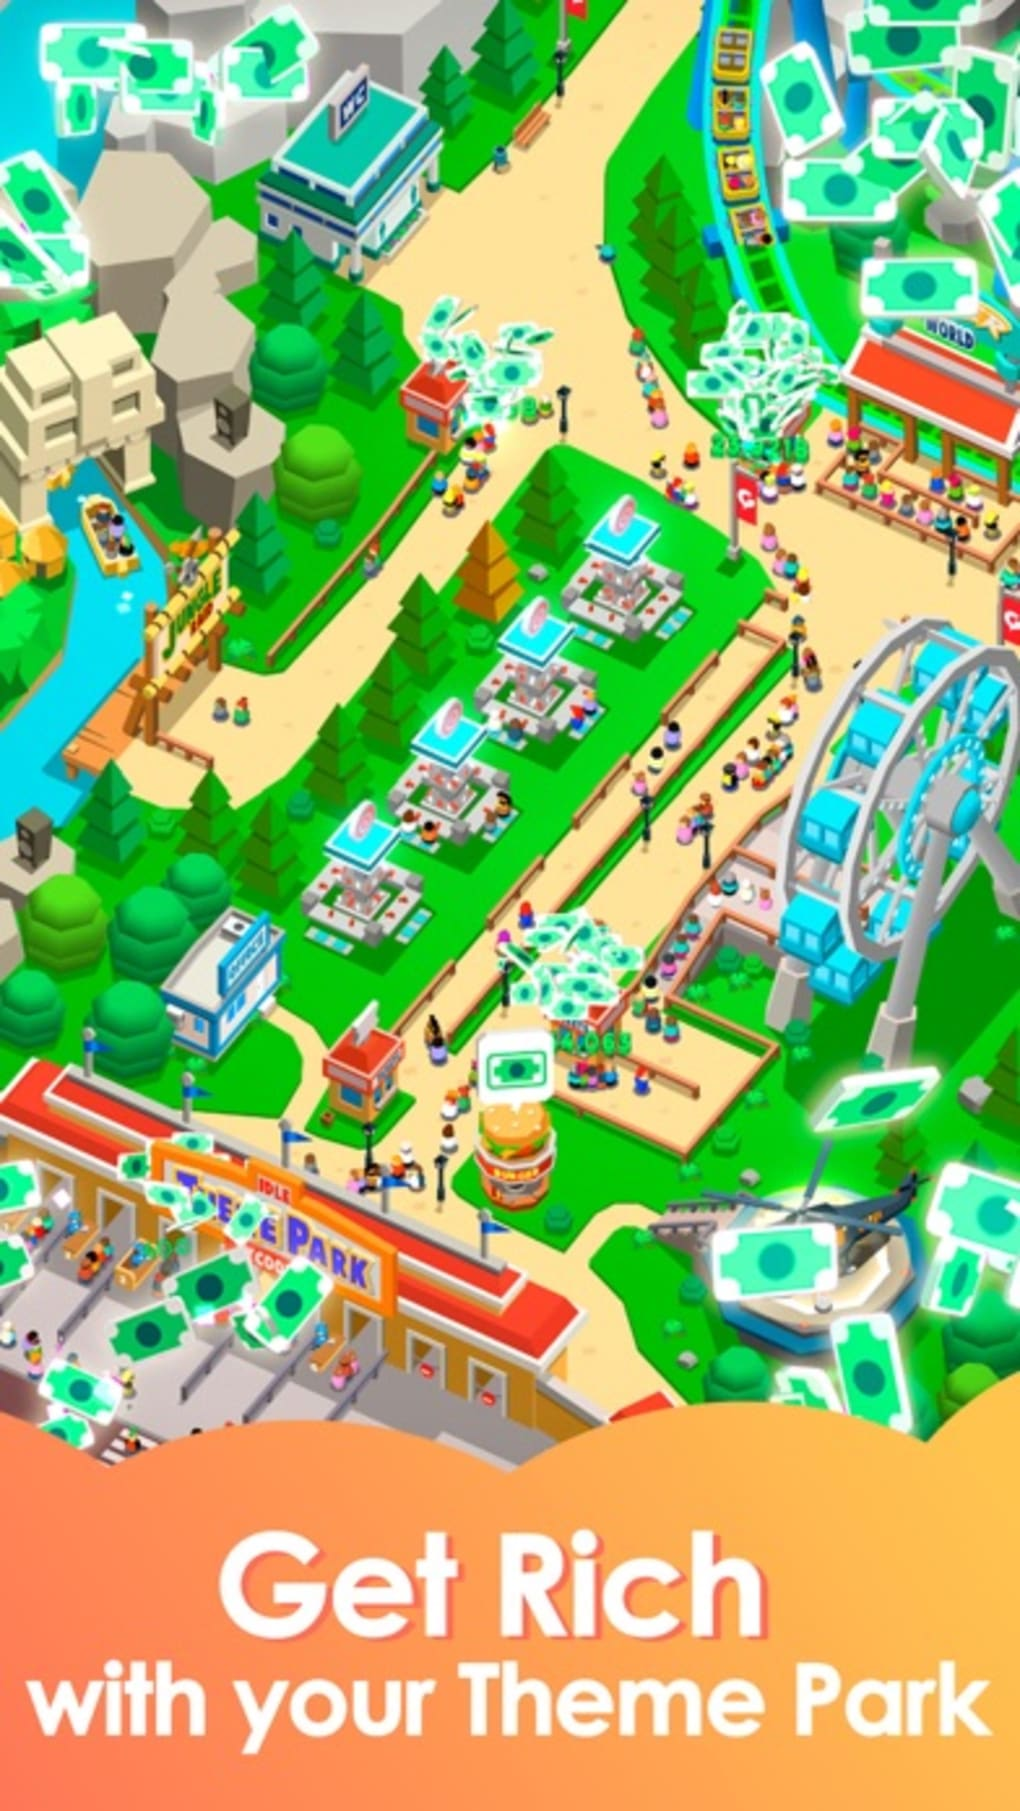 Idle Theme Park - Tycoon Game for iPhone - Download